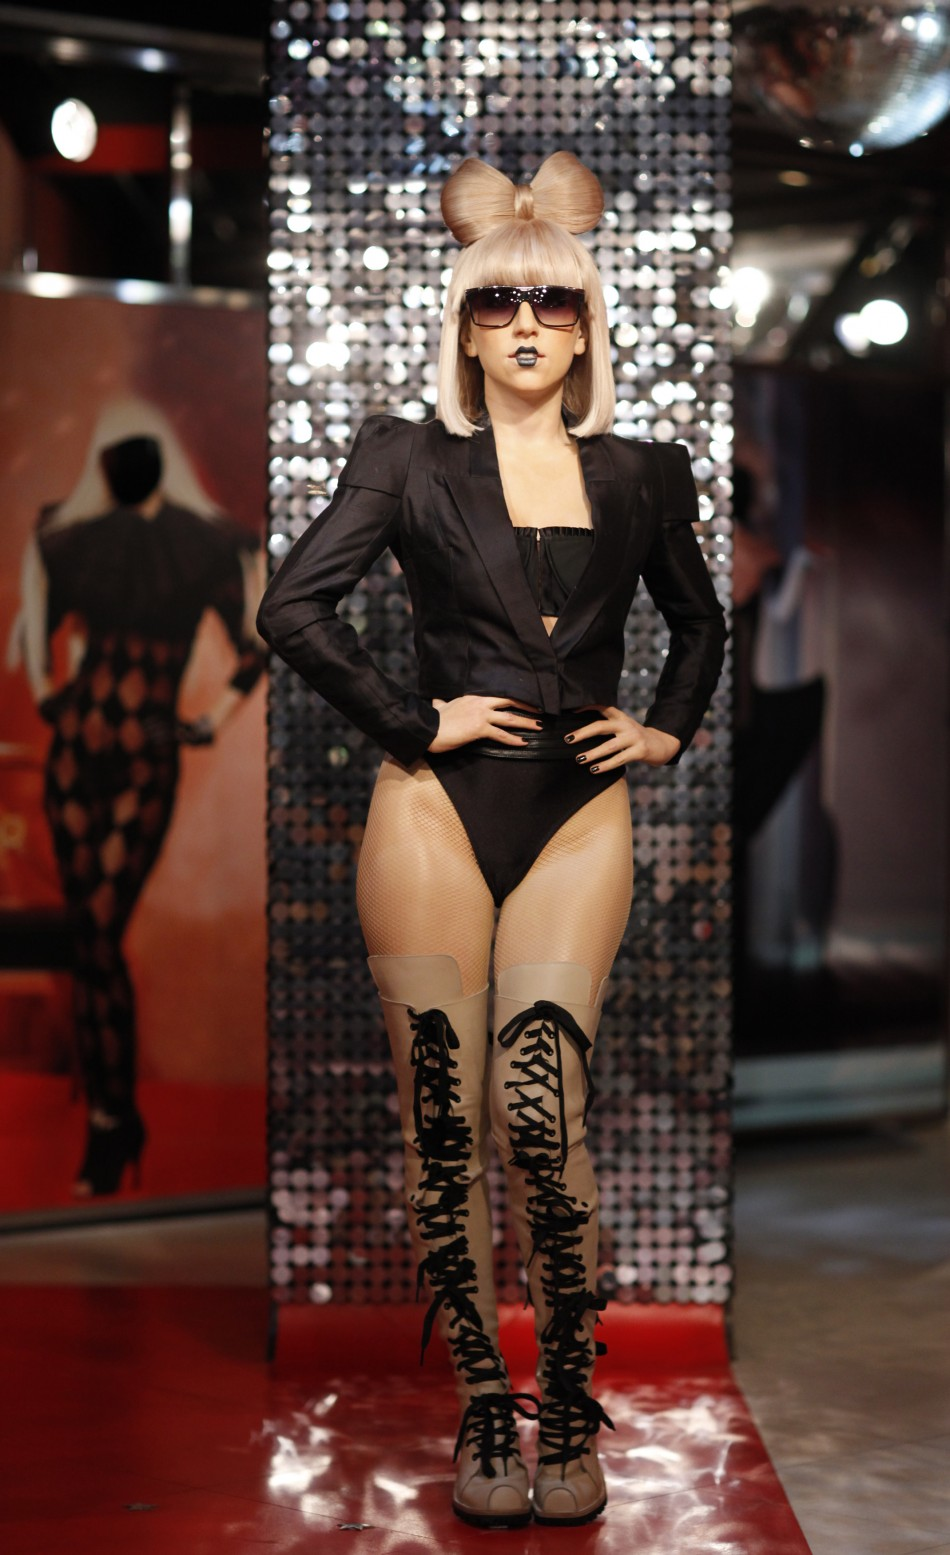 Lady Gaga Wax Figure